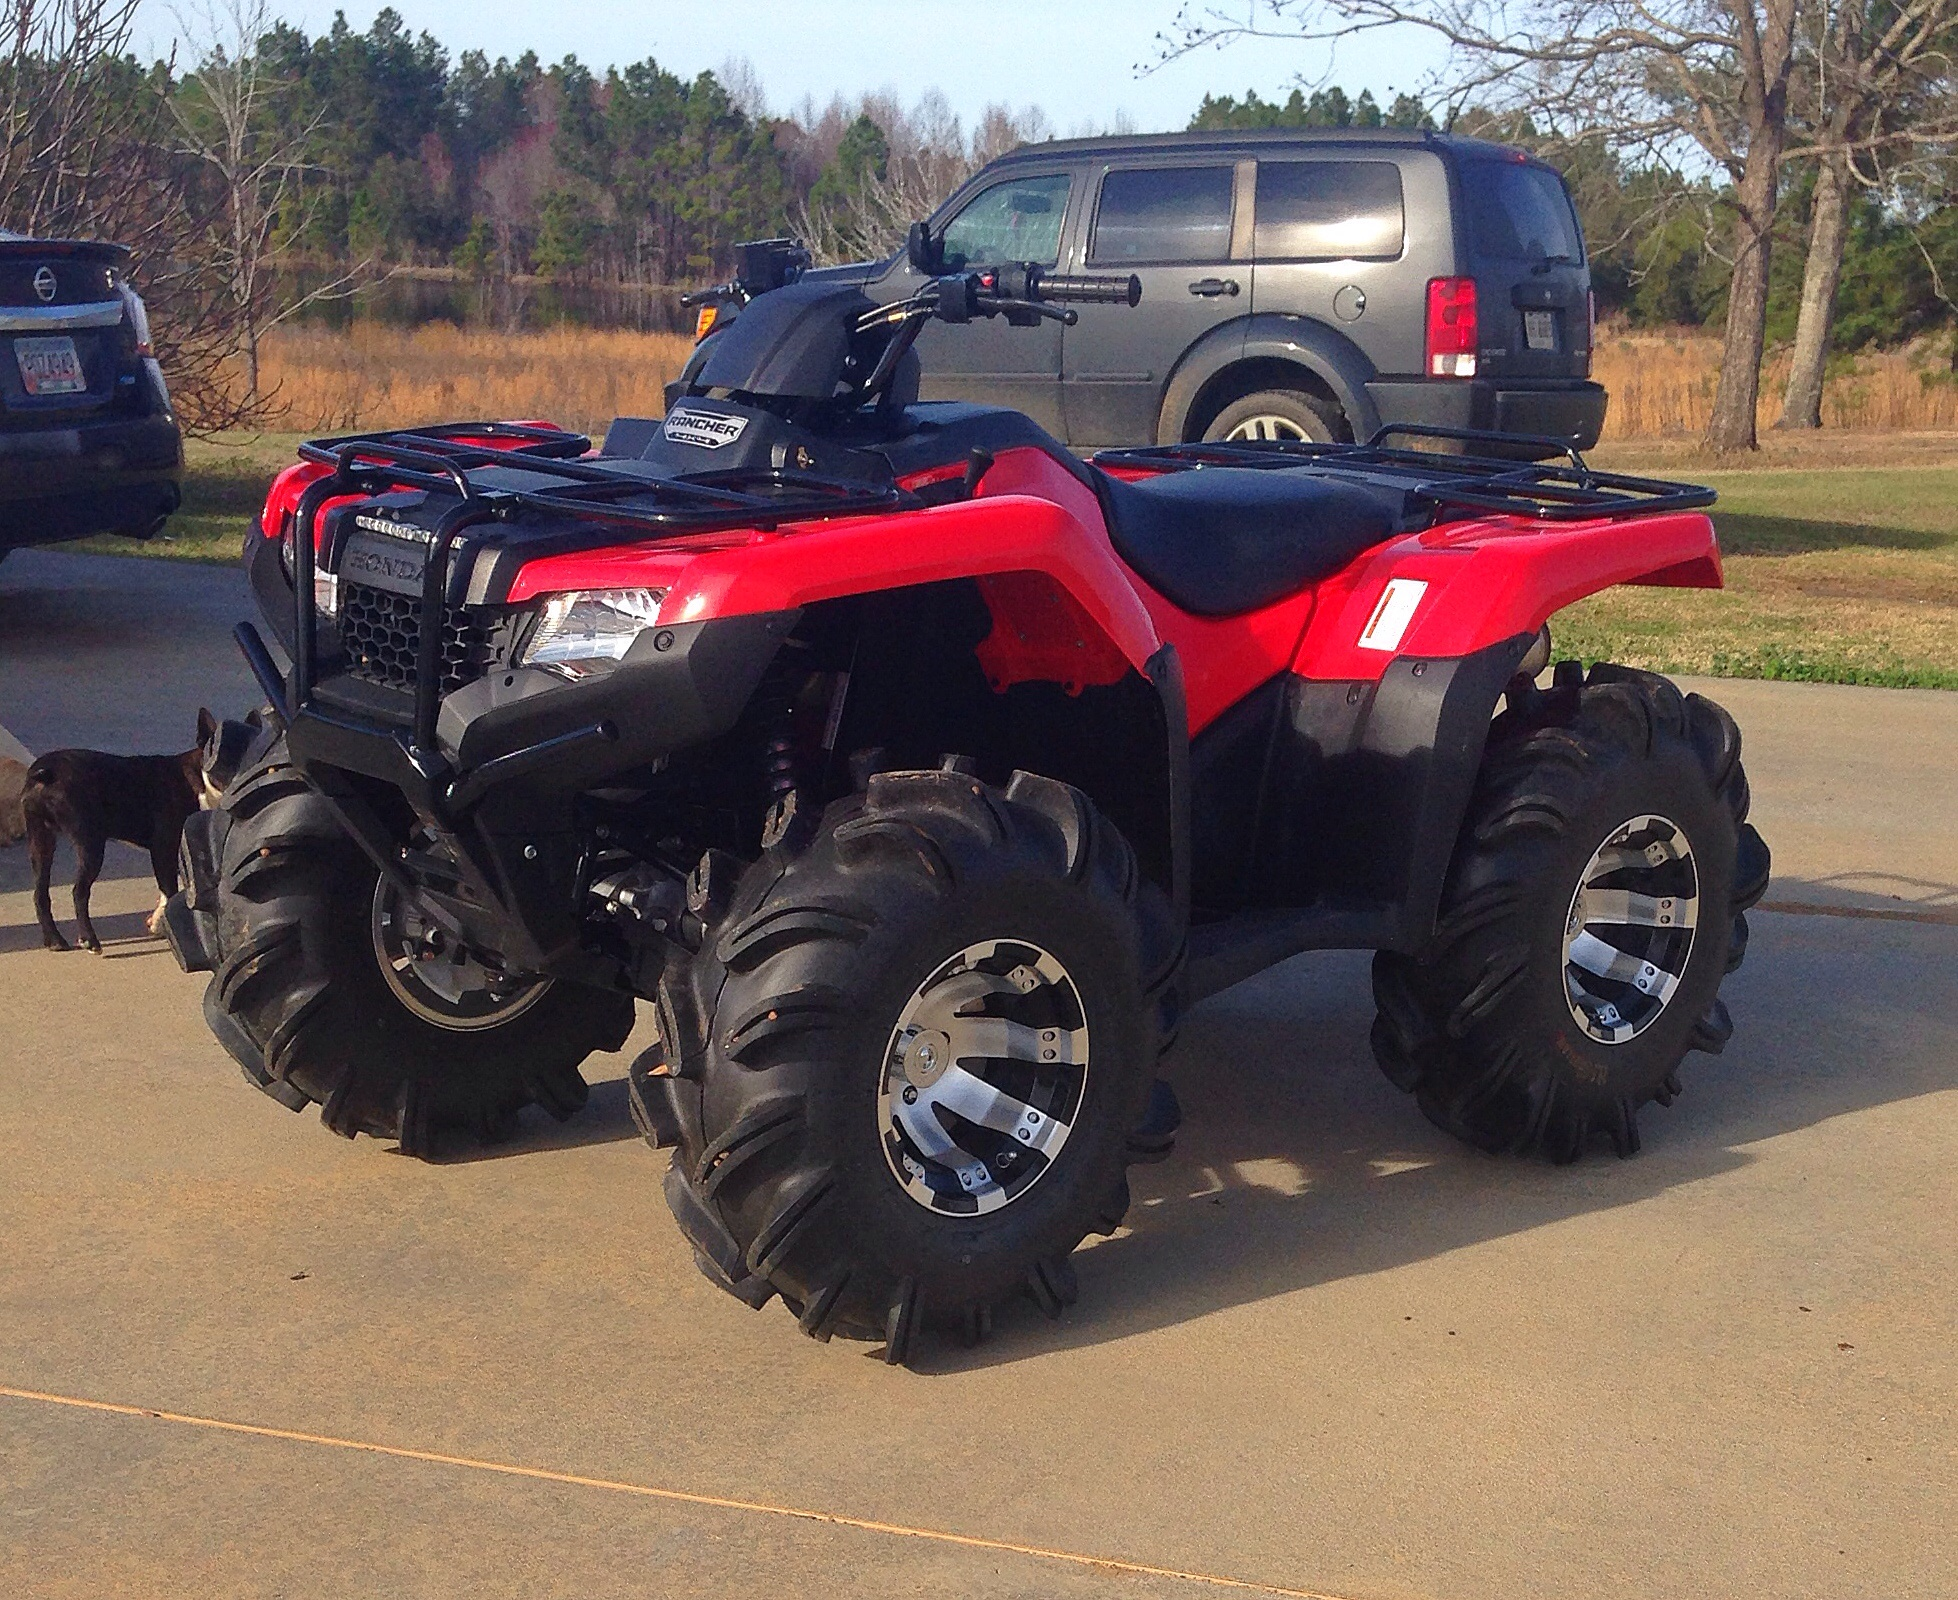 ANY New 2014 Ranchers - Page 5 - Honda ATV Forum